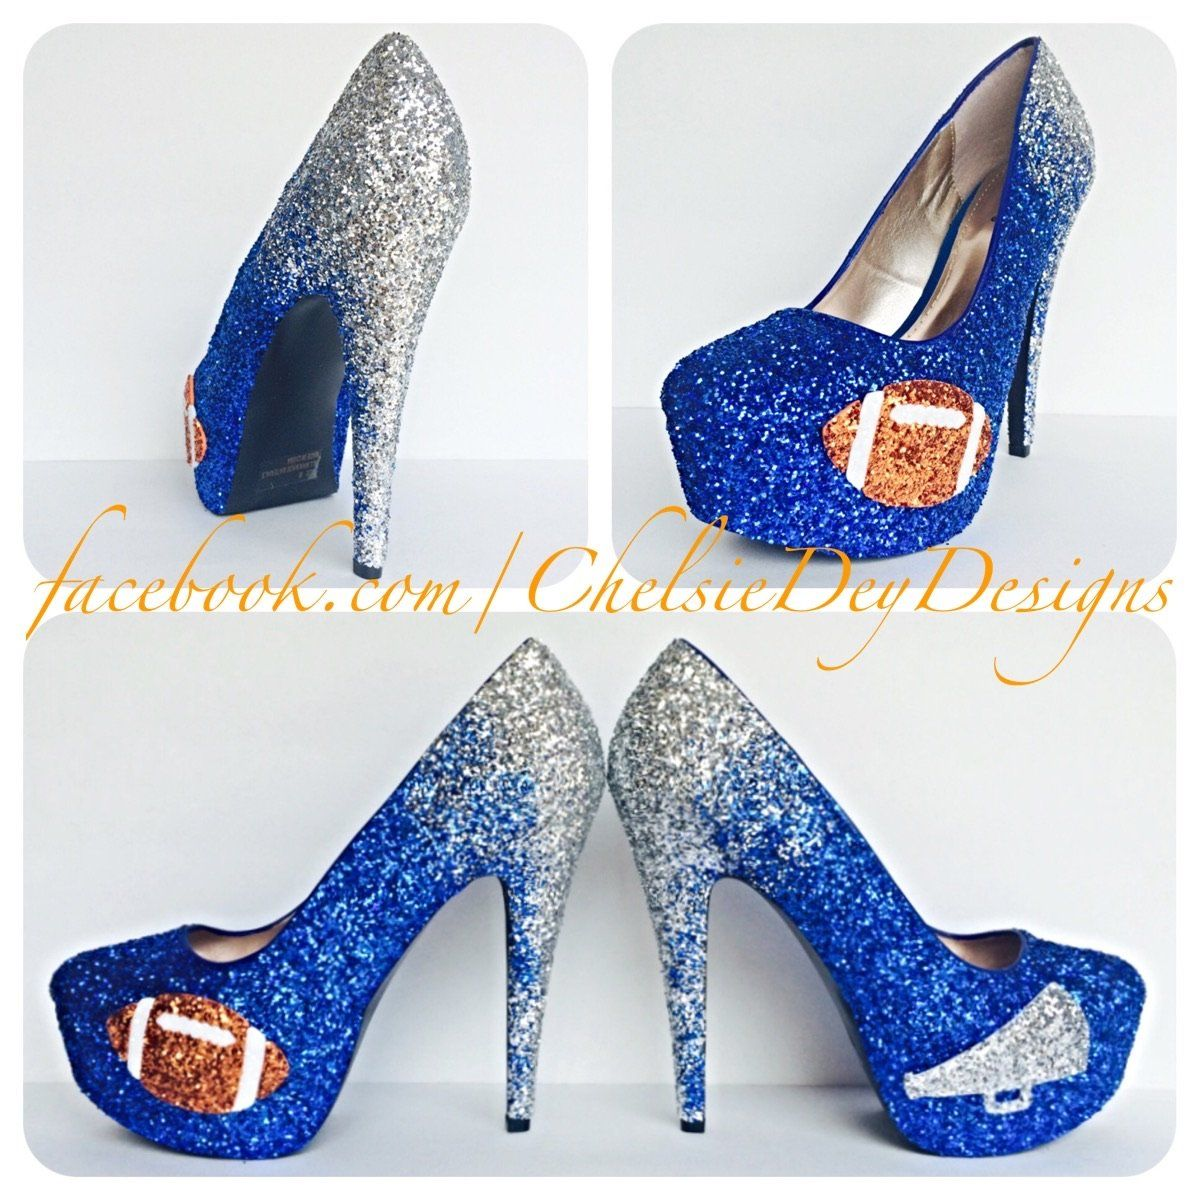 5ffd1113c2f9 Purple Glitter High Heels - Lilac Lavender Silver Ombre Pumps - Wedding  Last Name - Sparkly Wedding Shoes